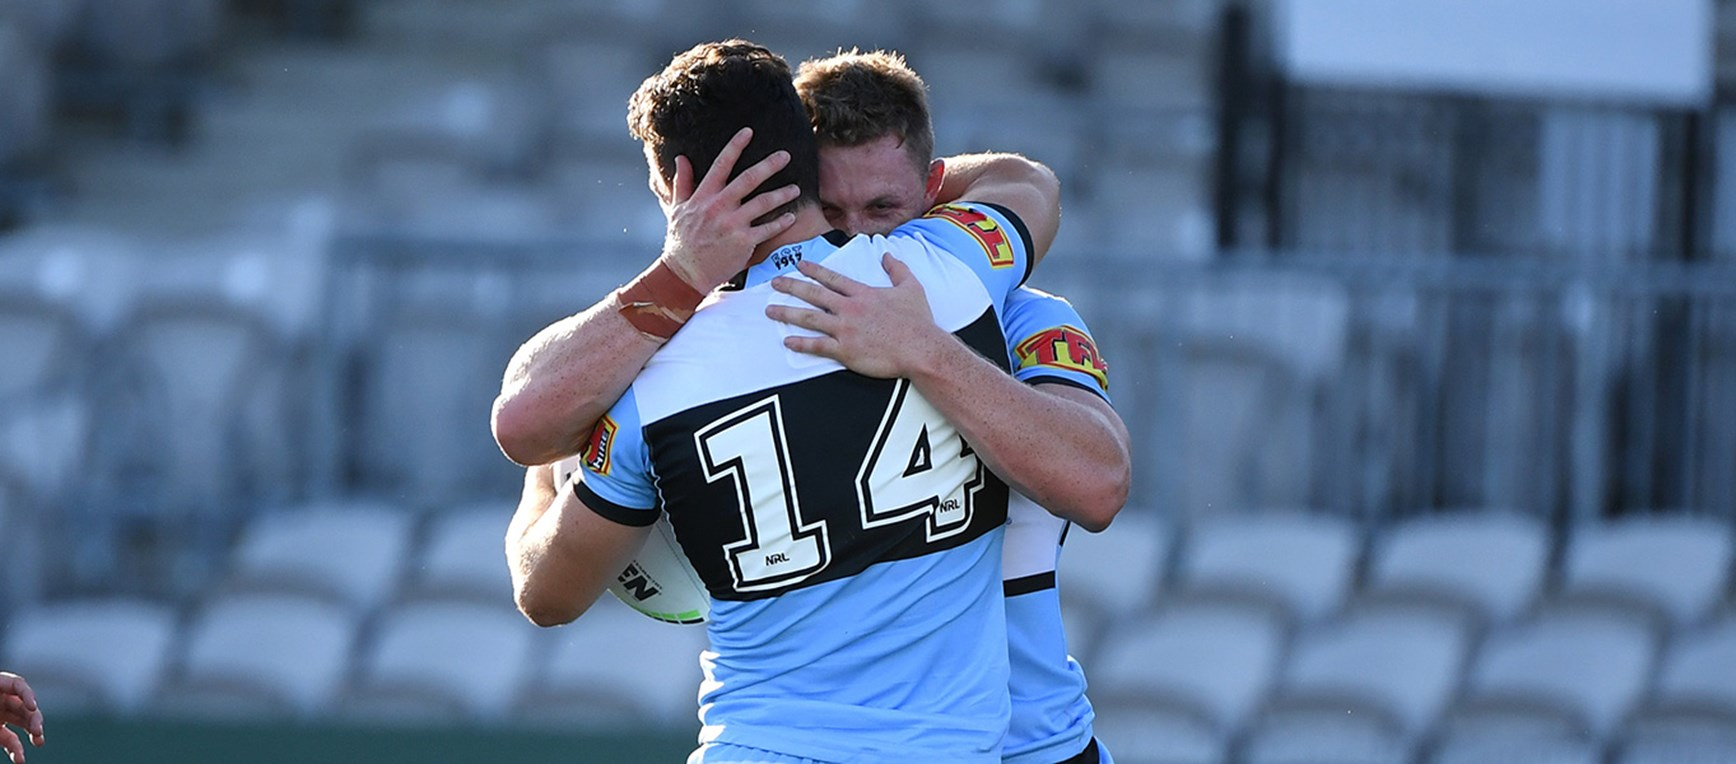 Match Gallery: Sharks v Manly trial